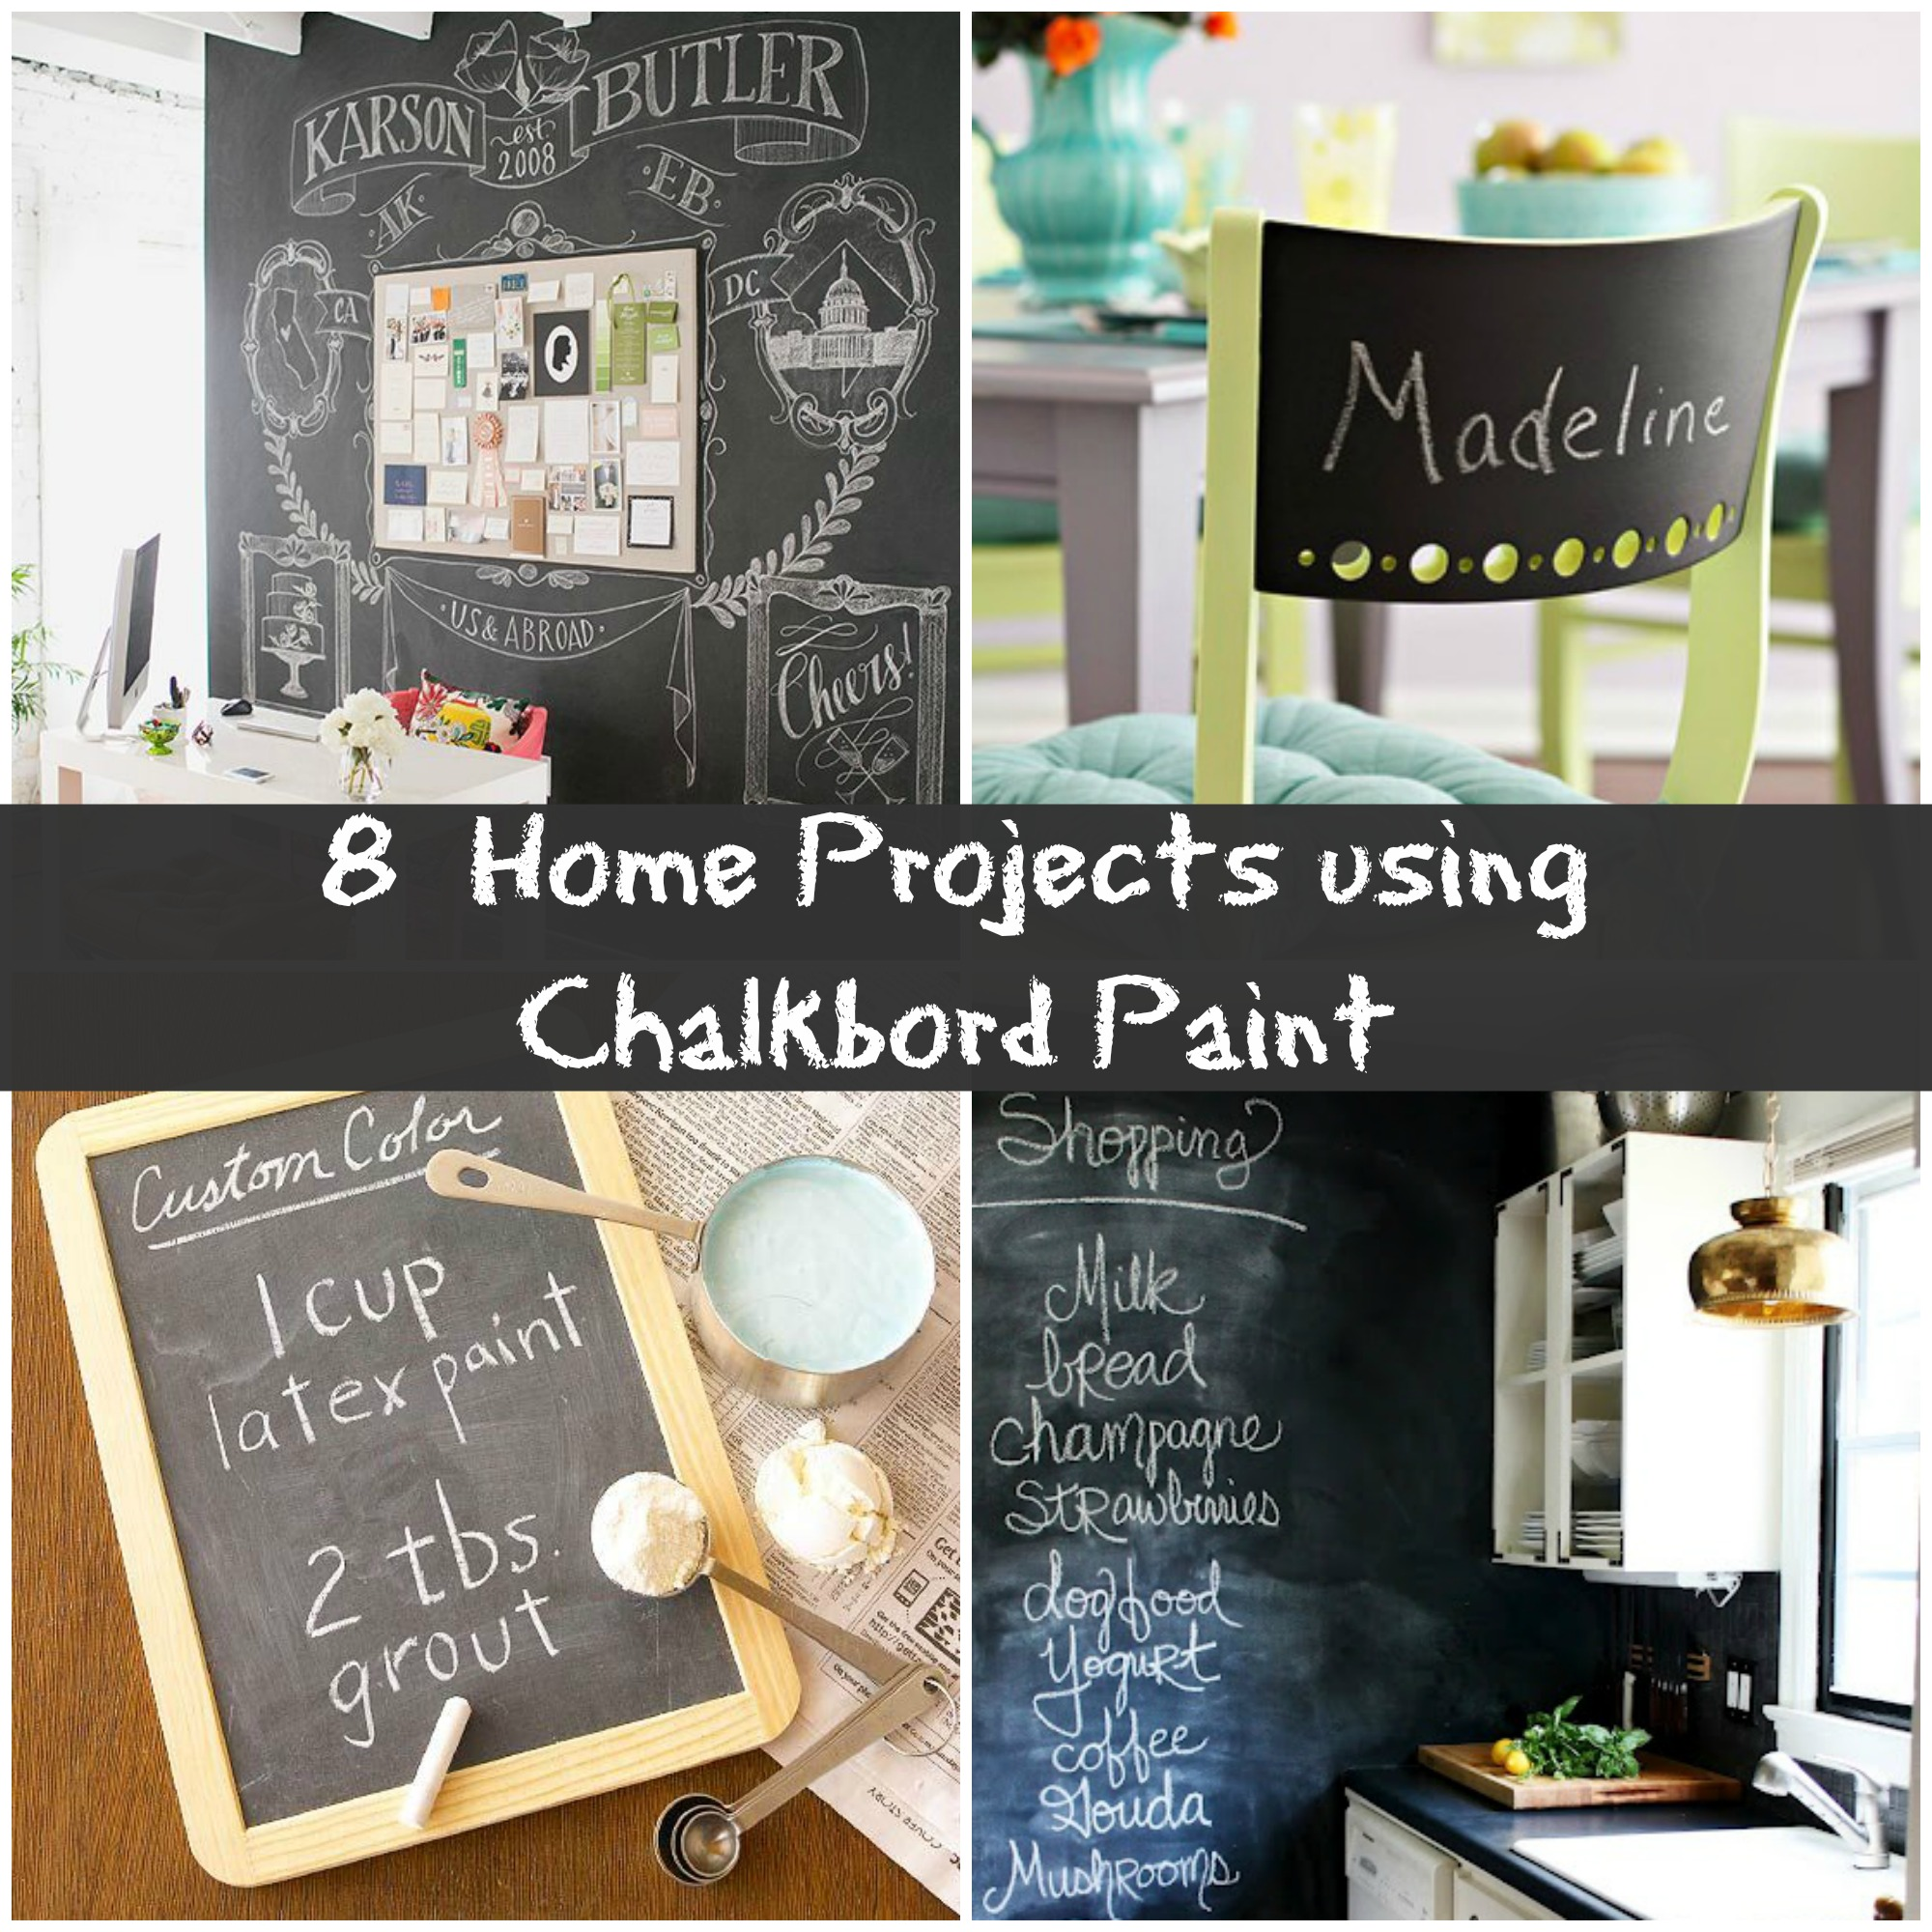 8 home project - Chalkboard paint